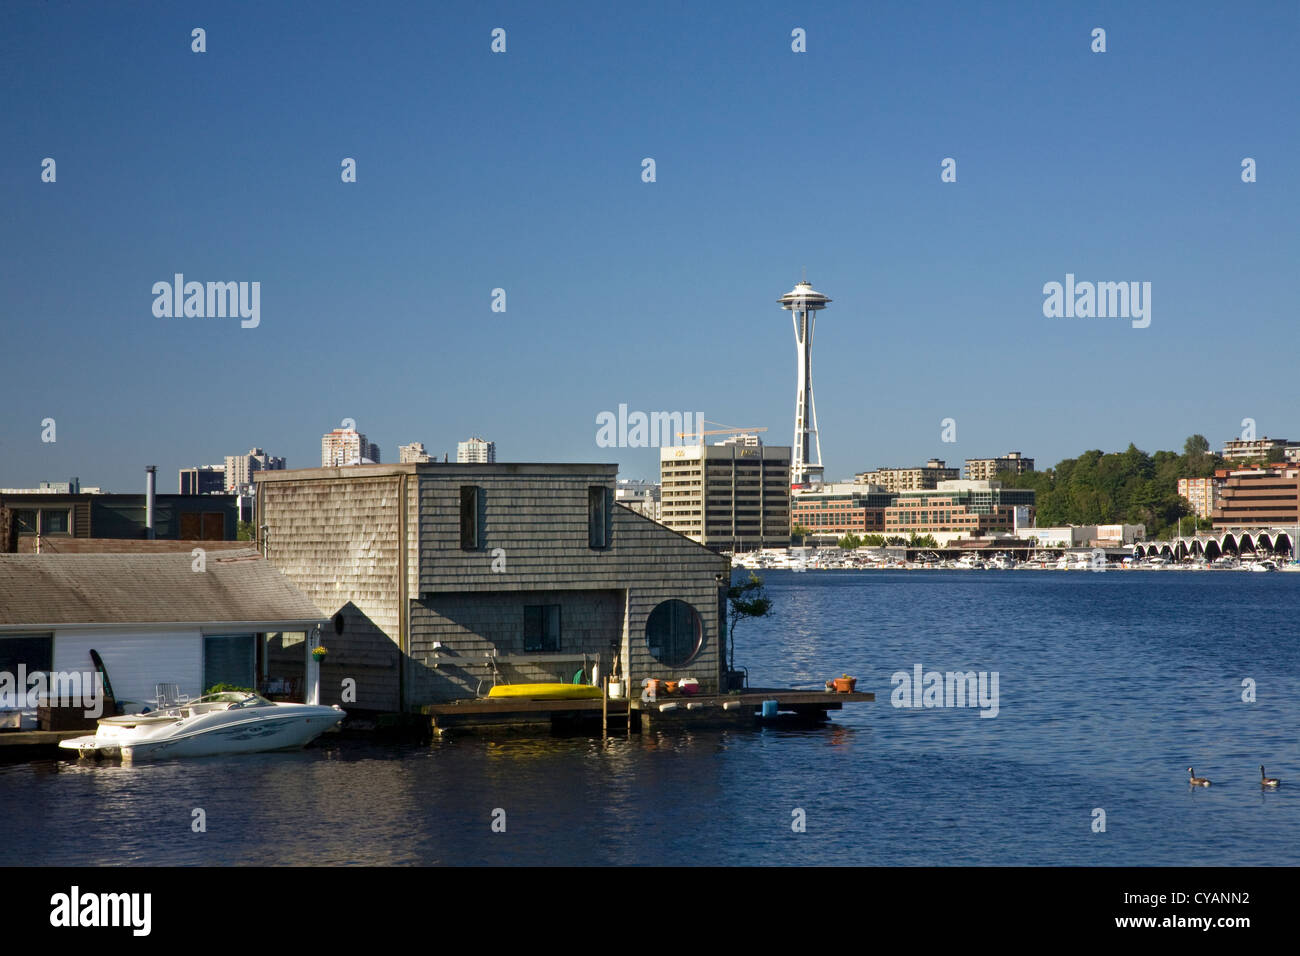 WA04518-00...WASHINGTON - House boat community on Lake Union with the Seattle Space Needle in the background. - Stock Image